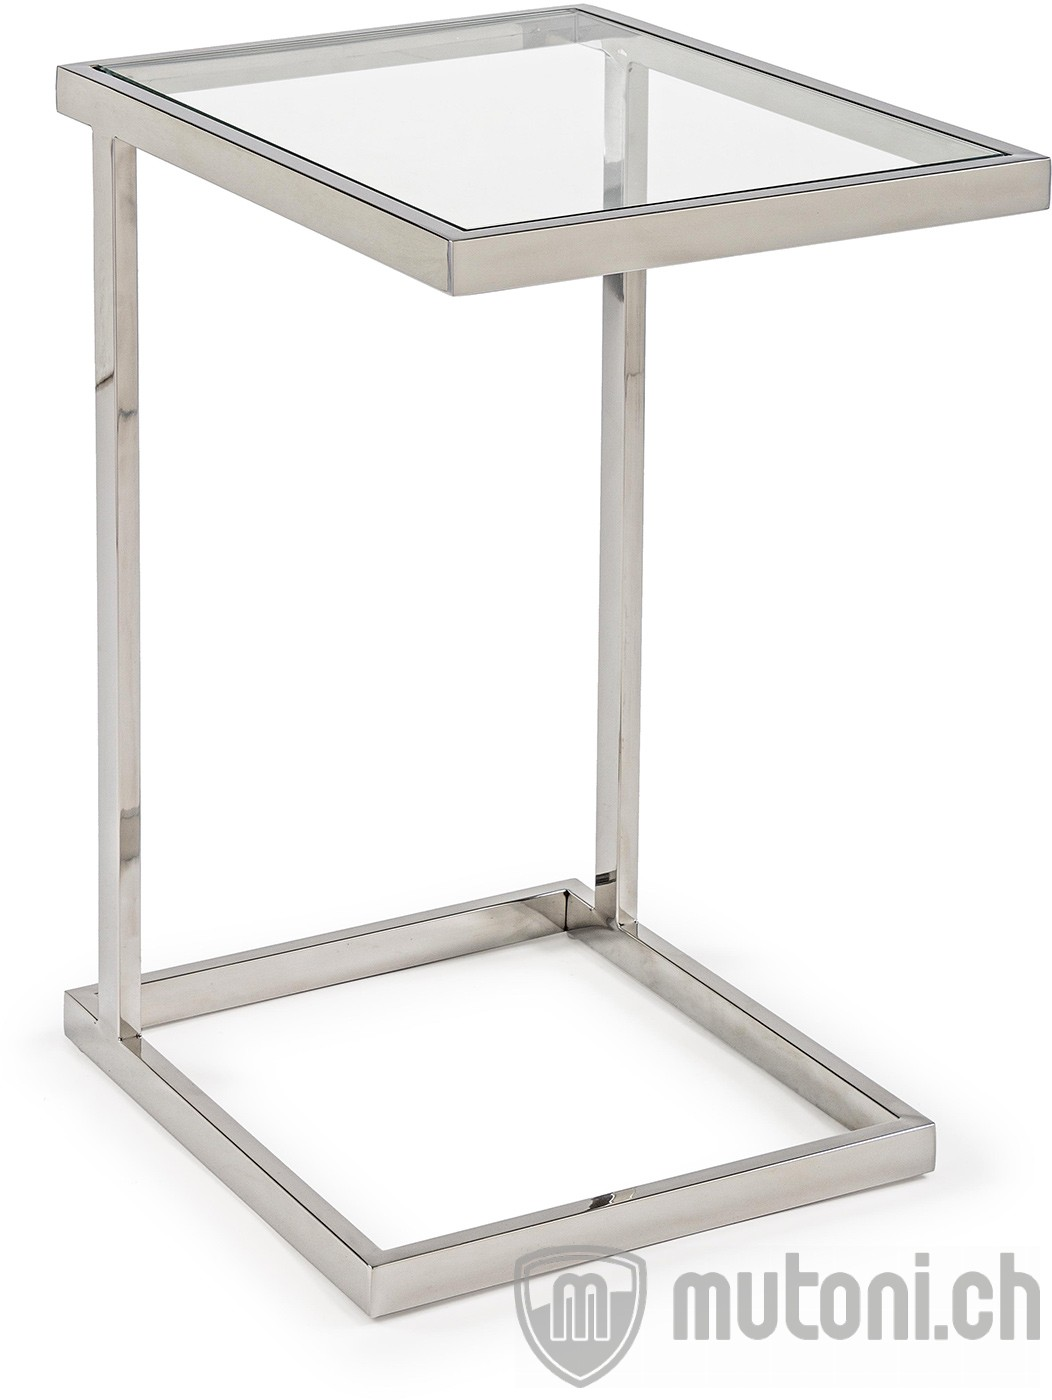 Cendrier Exterieur Decoratif Table D'appoint Saphira 48x35 | Tables D'appoint | Tables